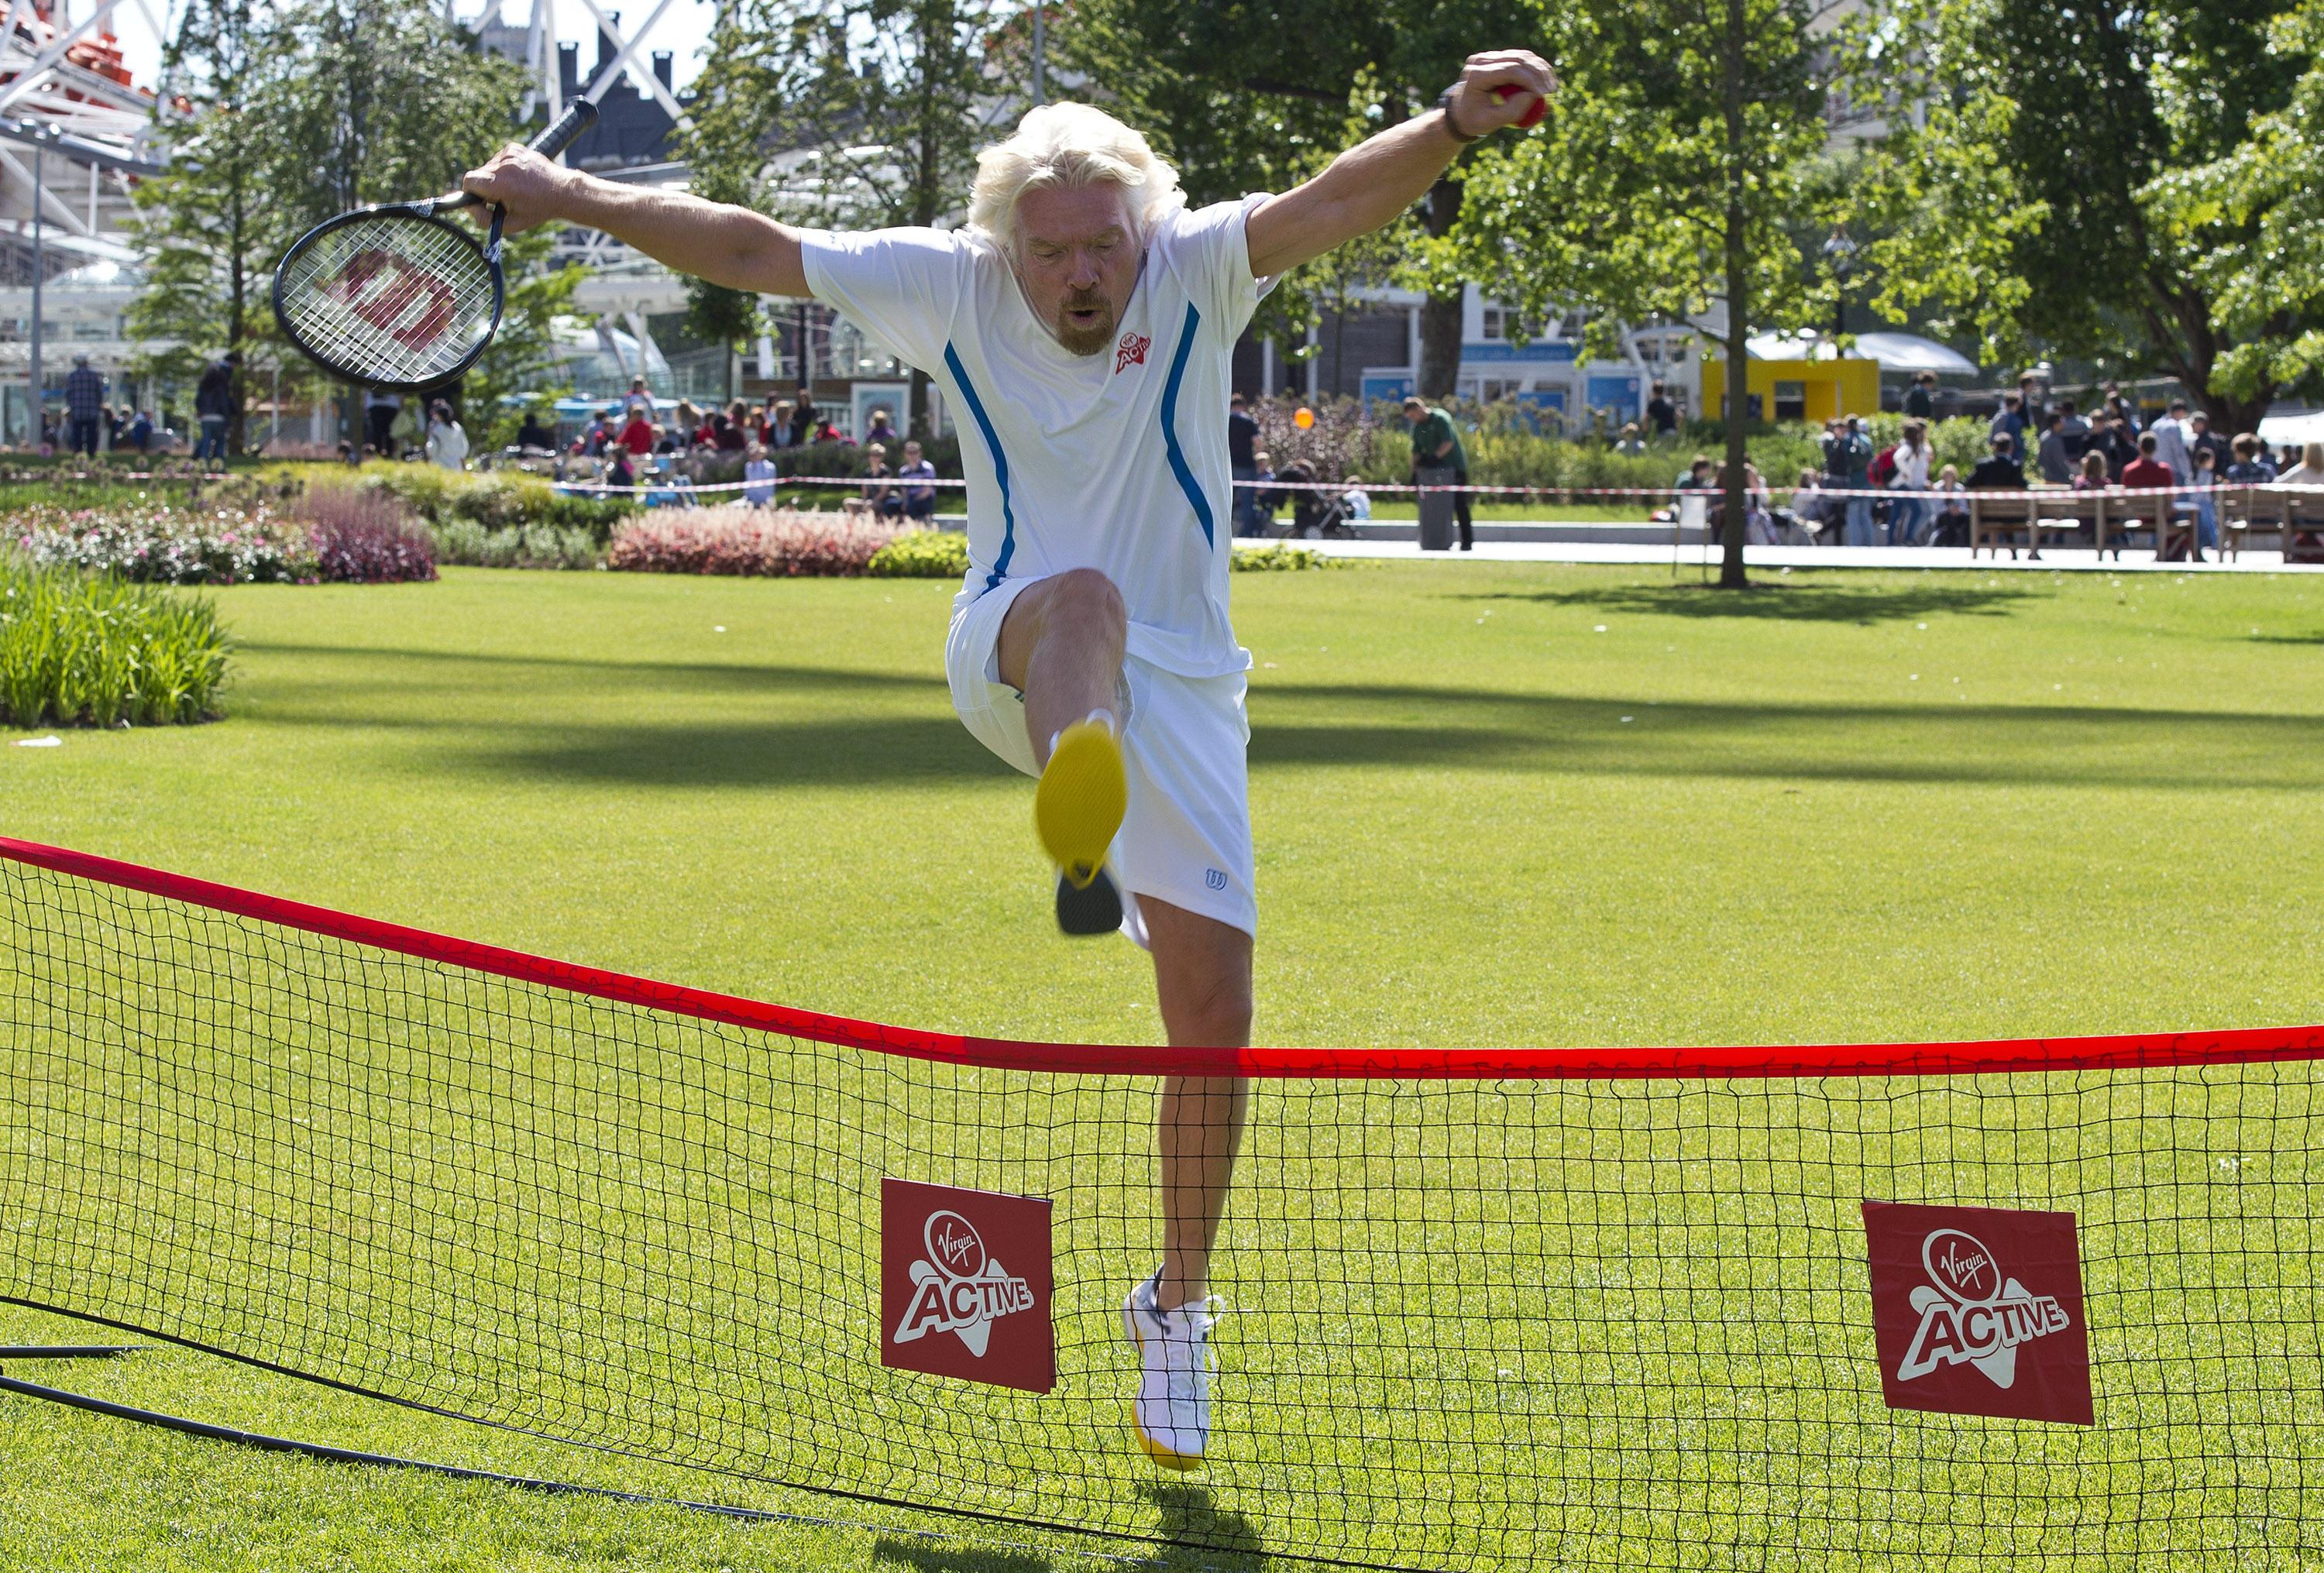 Richard Branson (Image: Ben A Pruchnie/Getty)